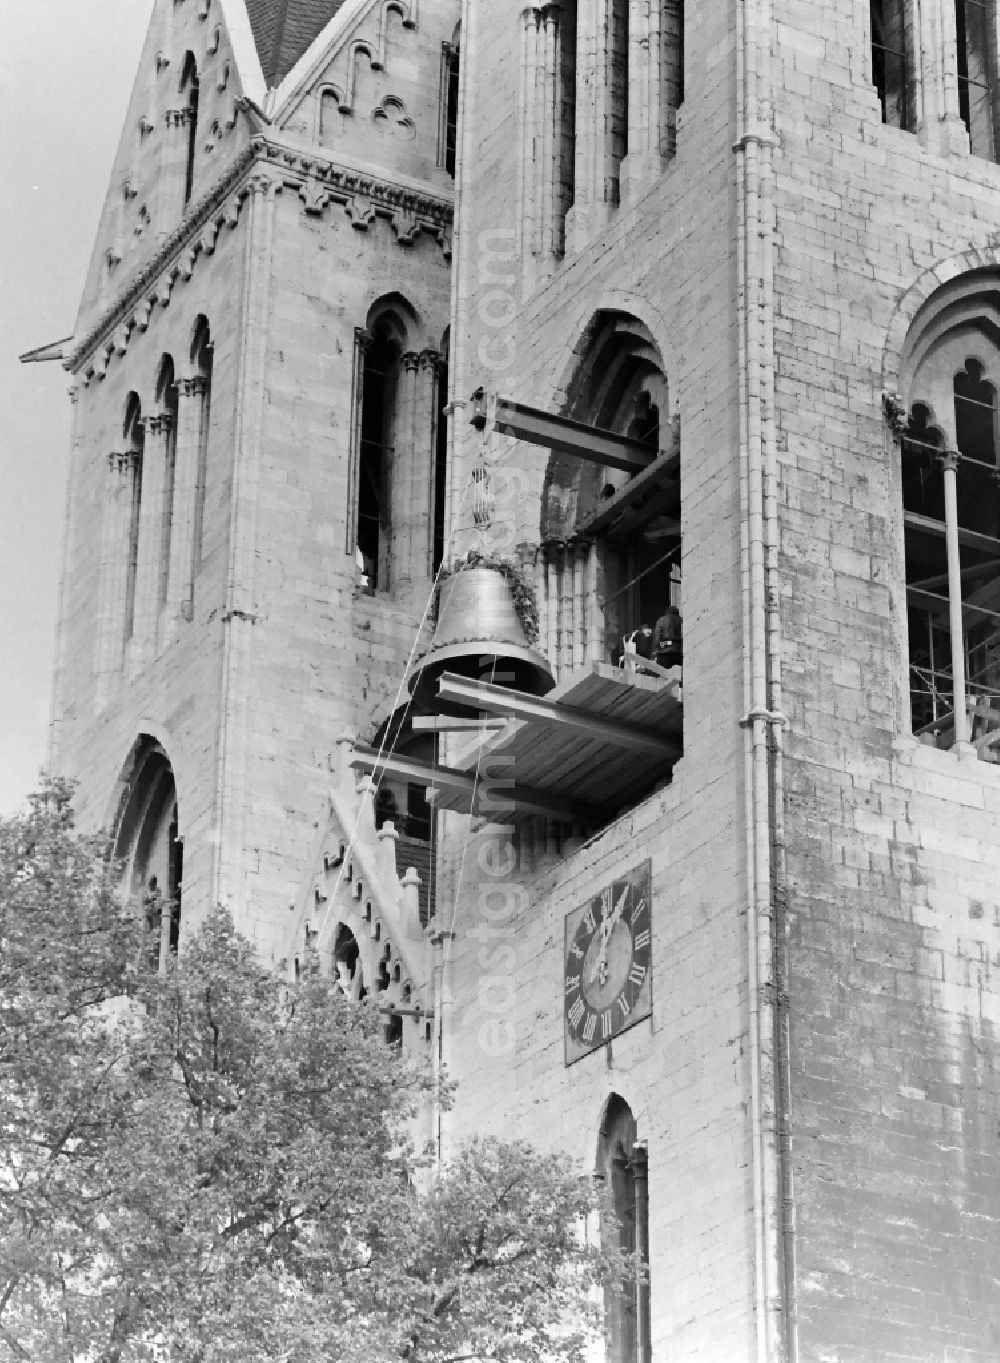 GDR picture archive: Halberstadt - Elevation of the cast bell Domina on the west facade of the cathedral - facade of the sacral building St. Stephanus and St. Sixtus on Domplatz in Halberstadt in the state Saxony-Anhalt in Germany